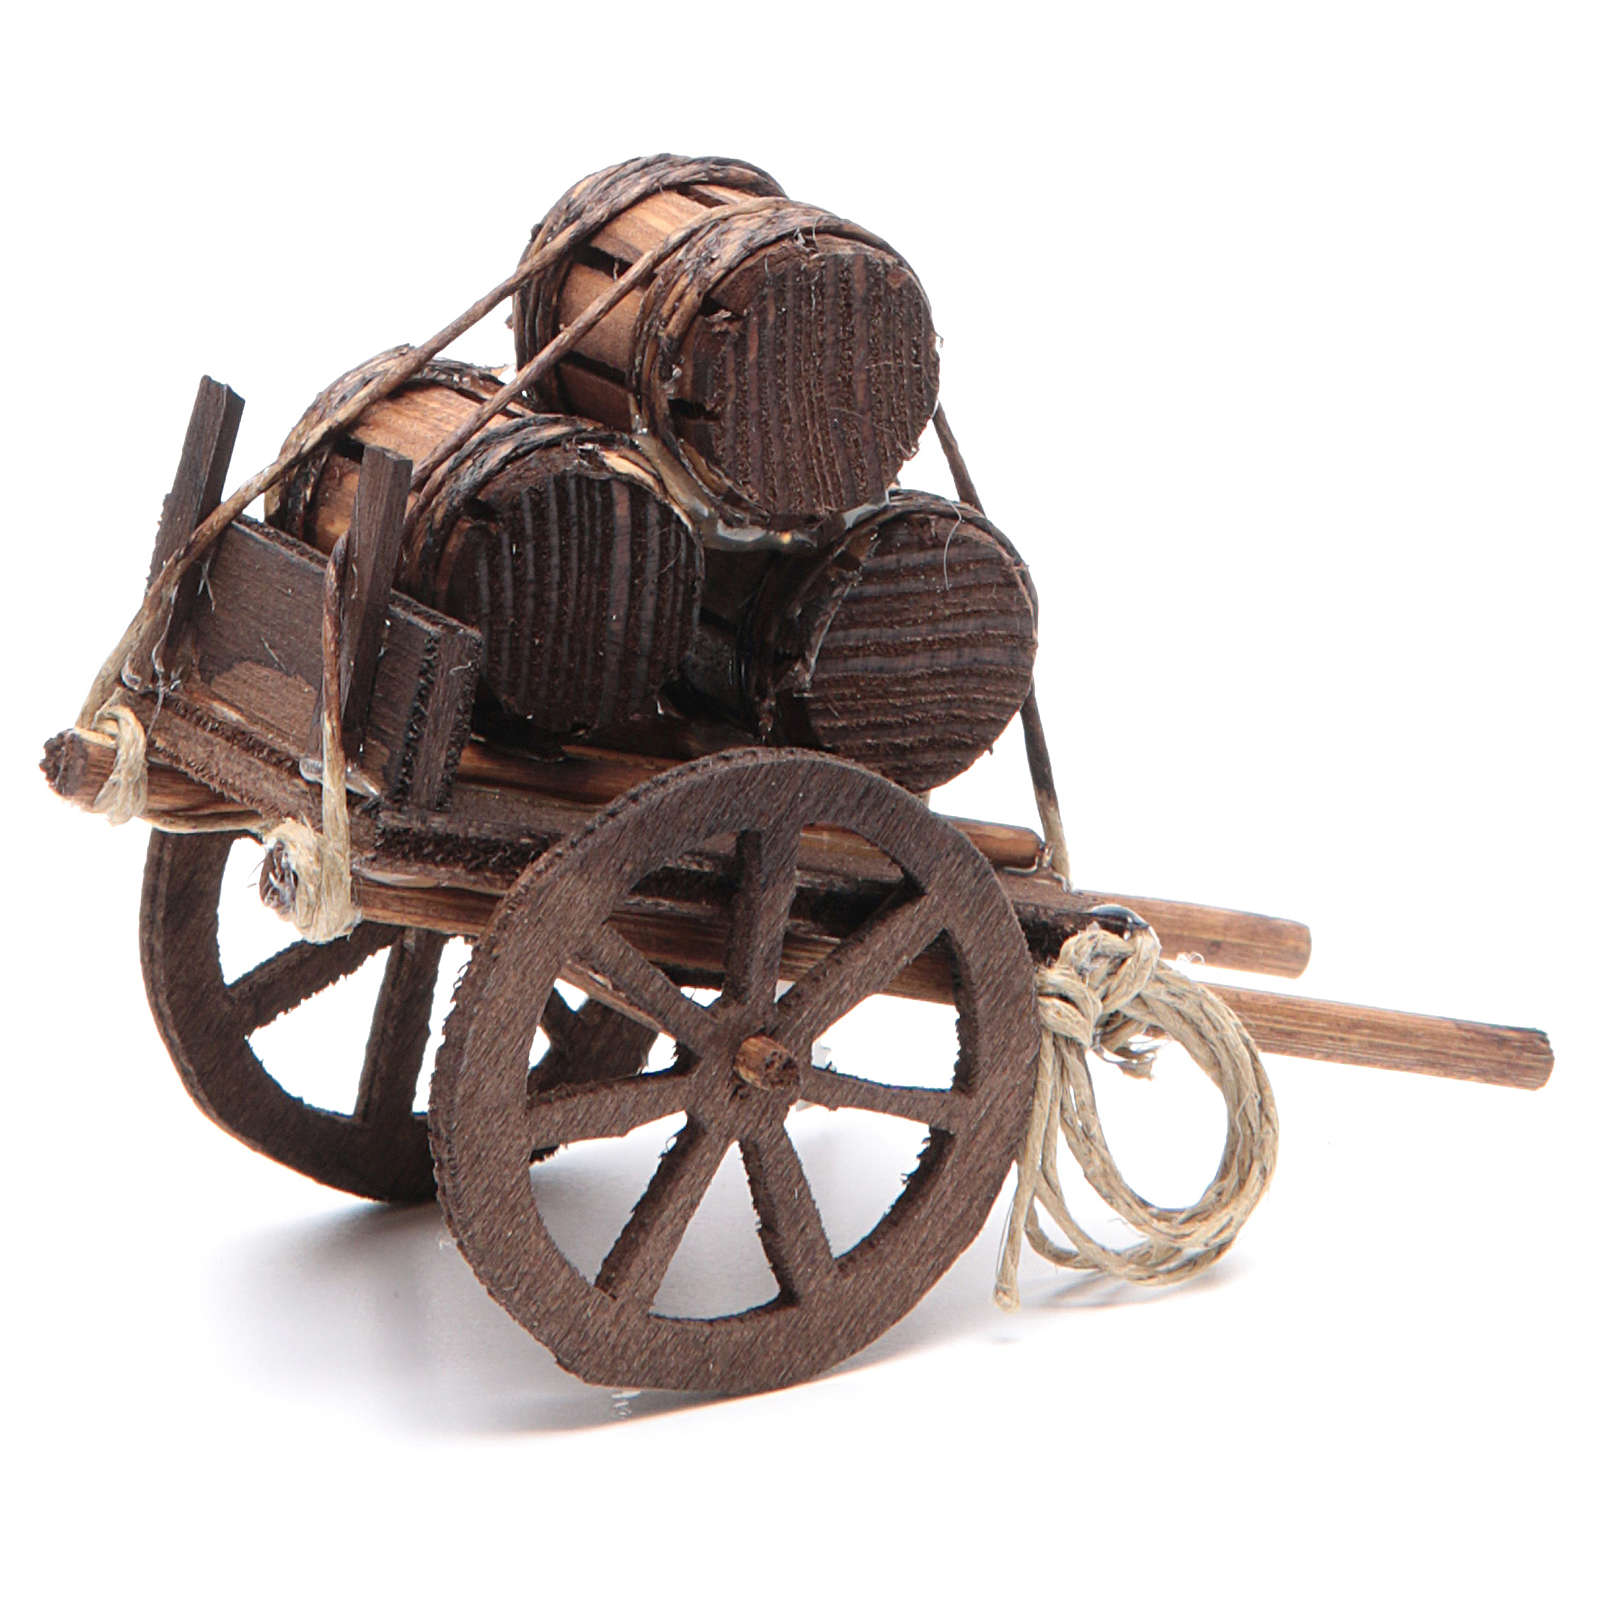 Fireworks cart 7x10x4cm for Neapolitan nativity 4